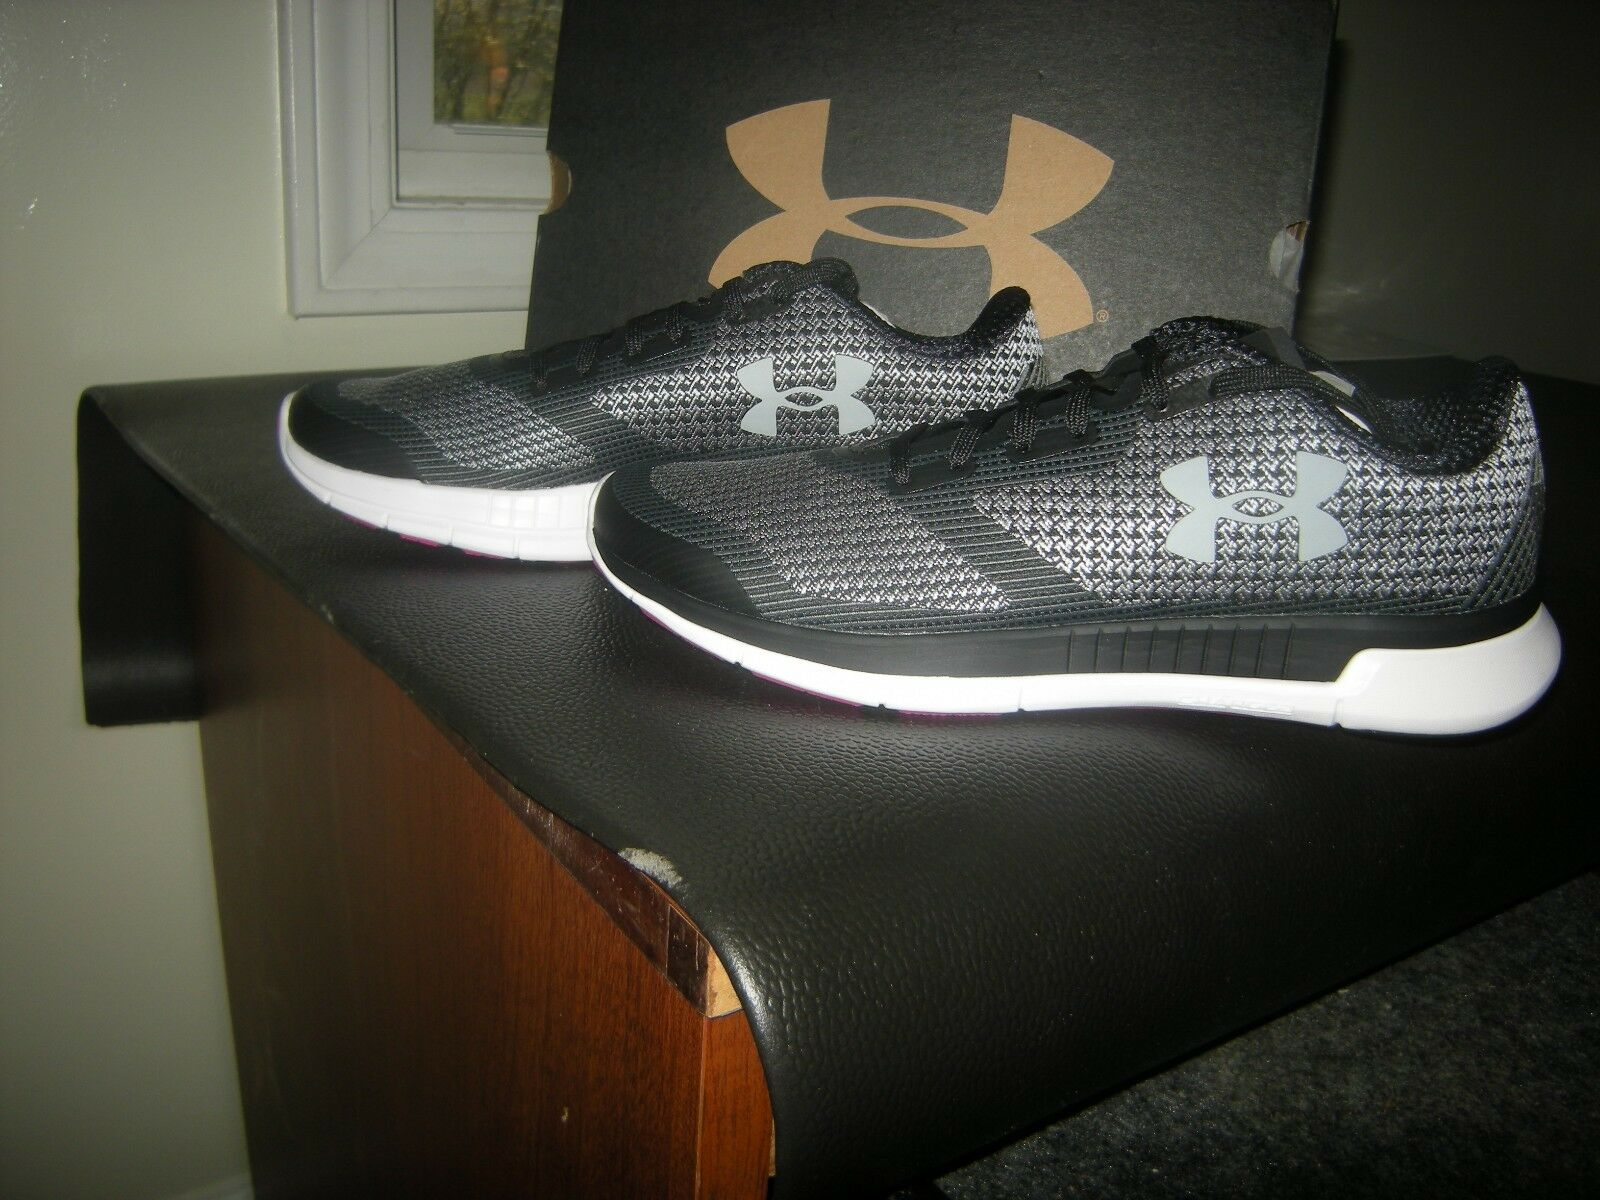 Brand New Womens Black & Gray Under Armour Charged Lightning Tennis Shoes, 8.5